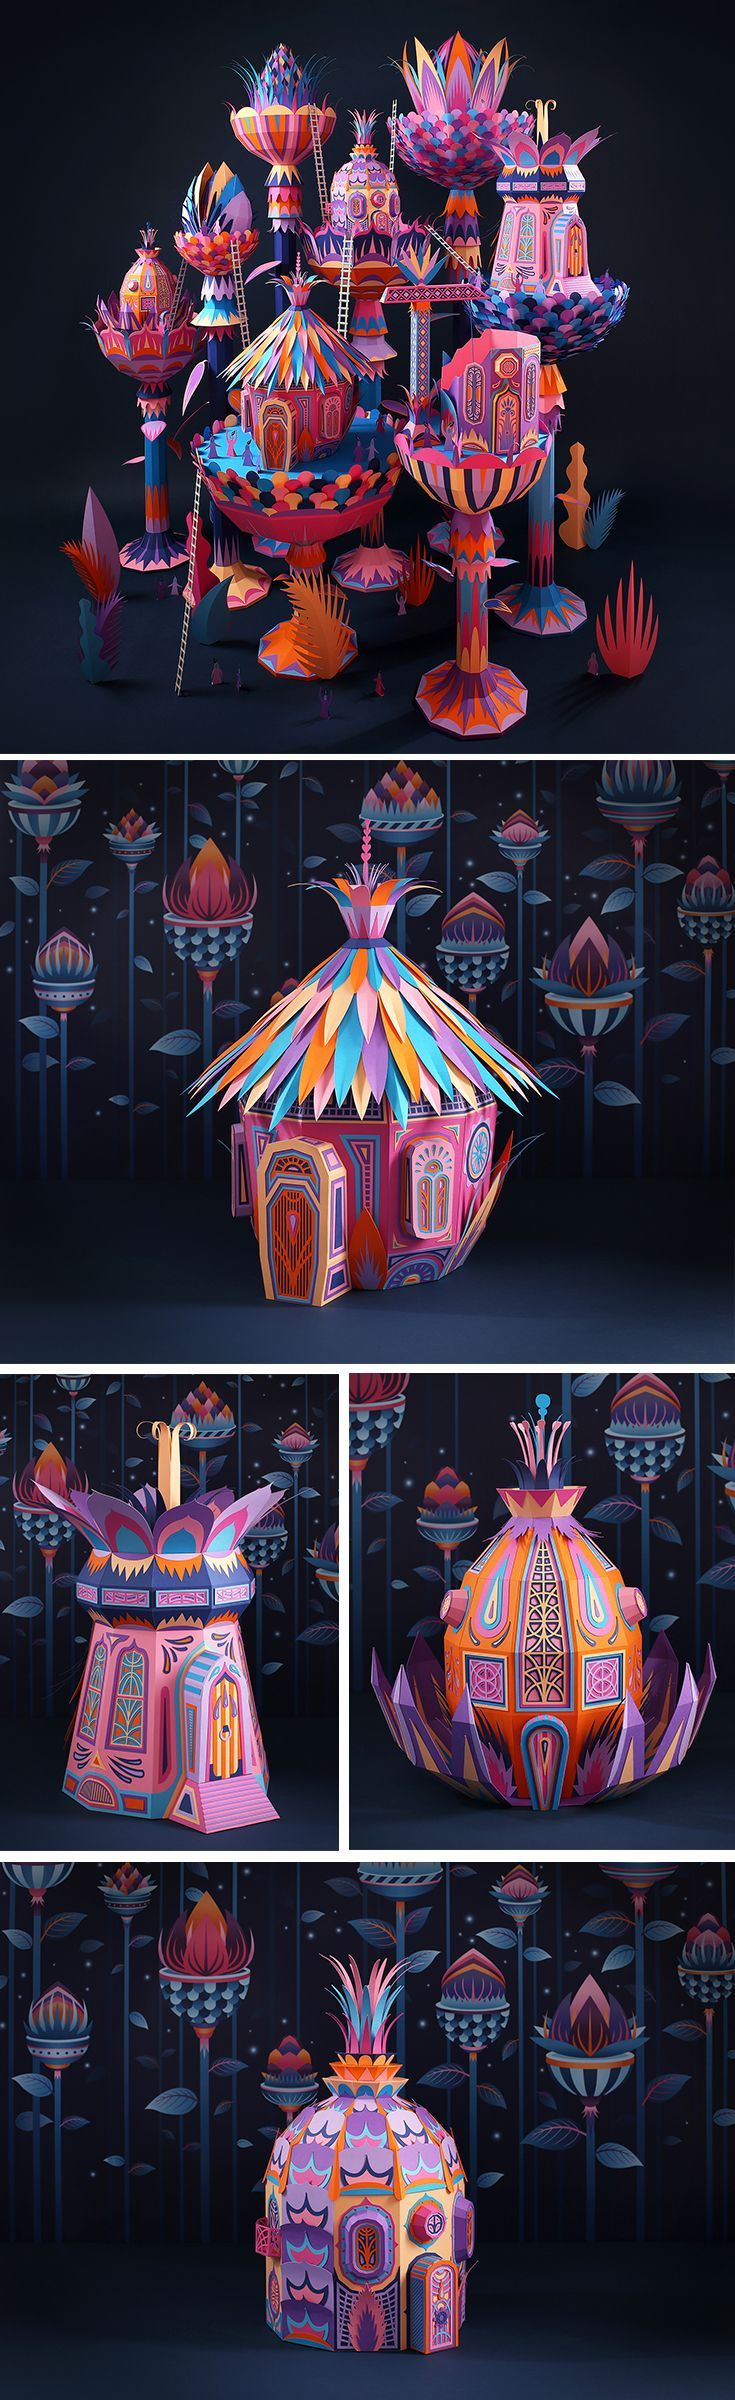 Click for more pics! Fantastic Miniature Worlds Bursting with Color for Hermès Window Display in Dubai #paperart #paper #art